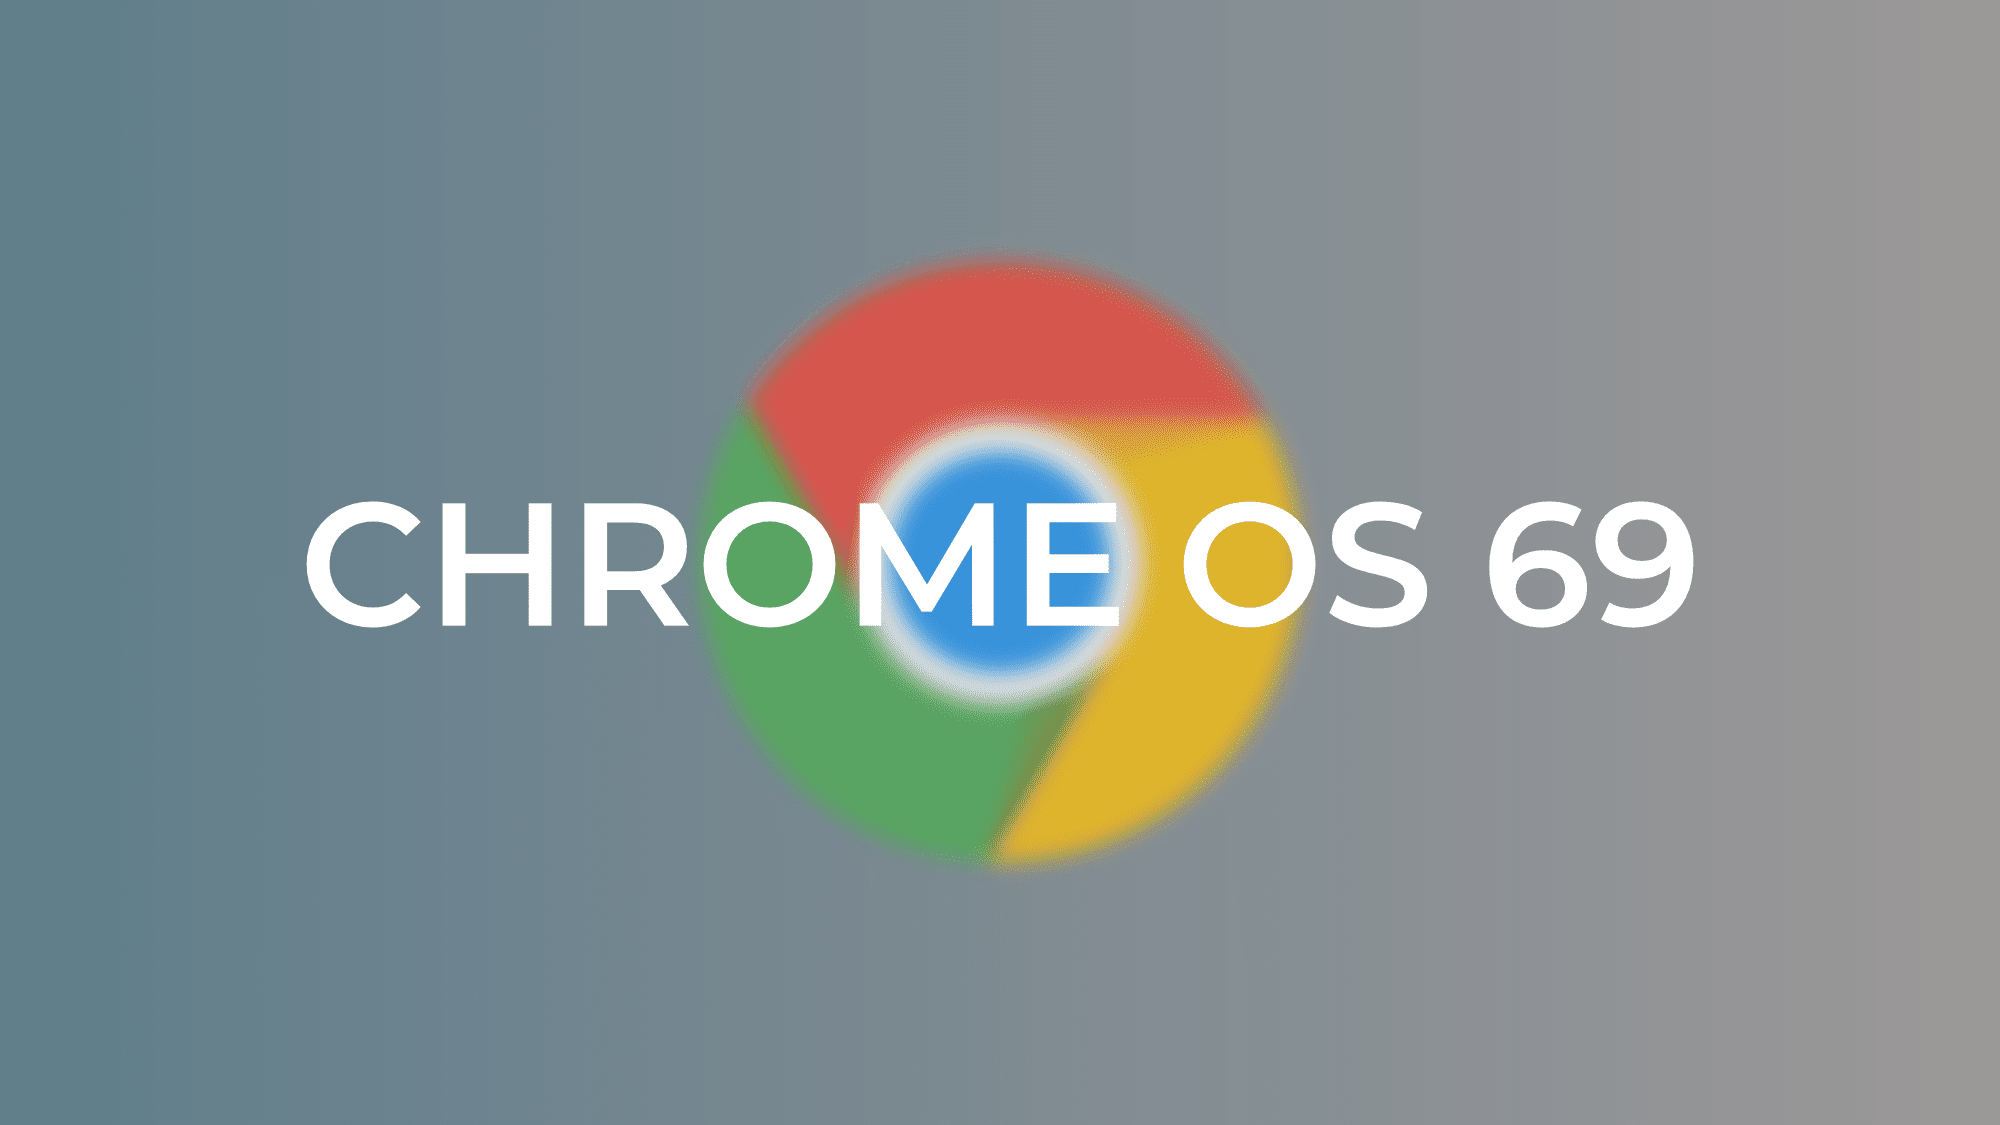 Chrome OS 69 Begins Rolling Out To Some Users